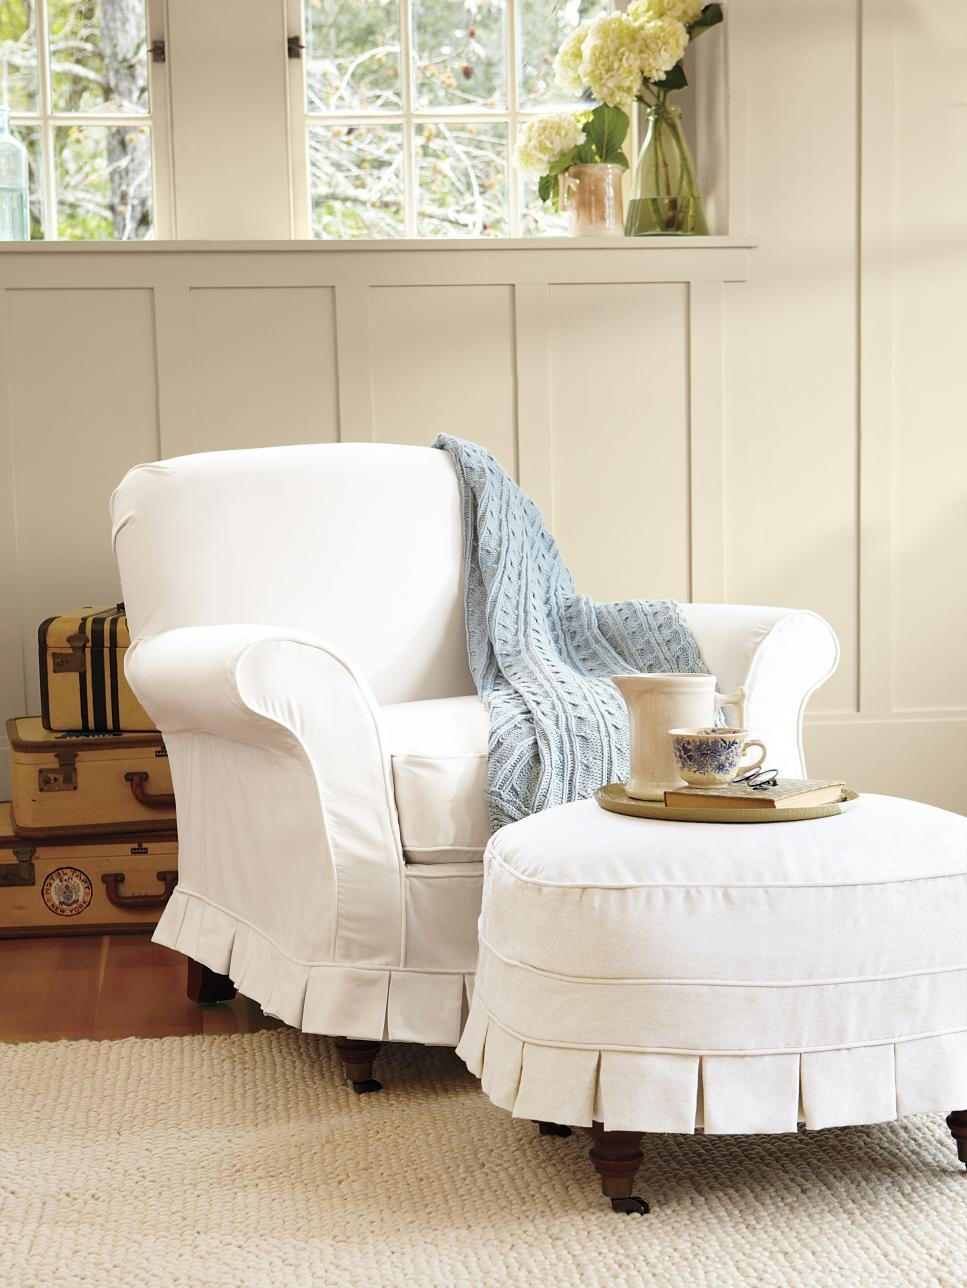 Unbelievable Slipcovers For Living And Dining Rooms | Hgtv in Slipcovers For Chairs And Sofas